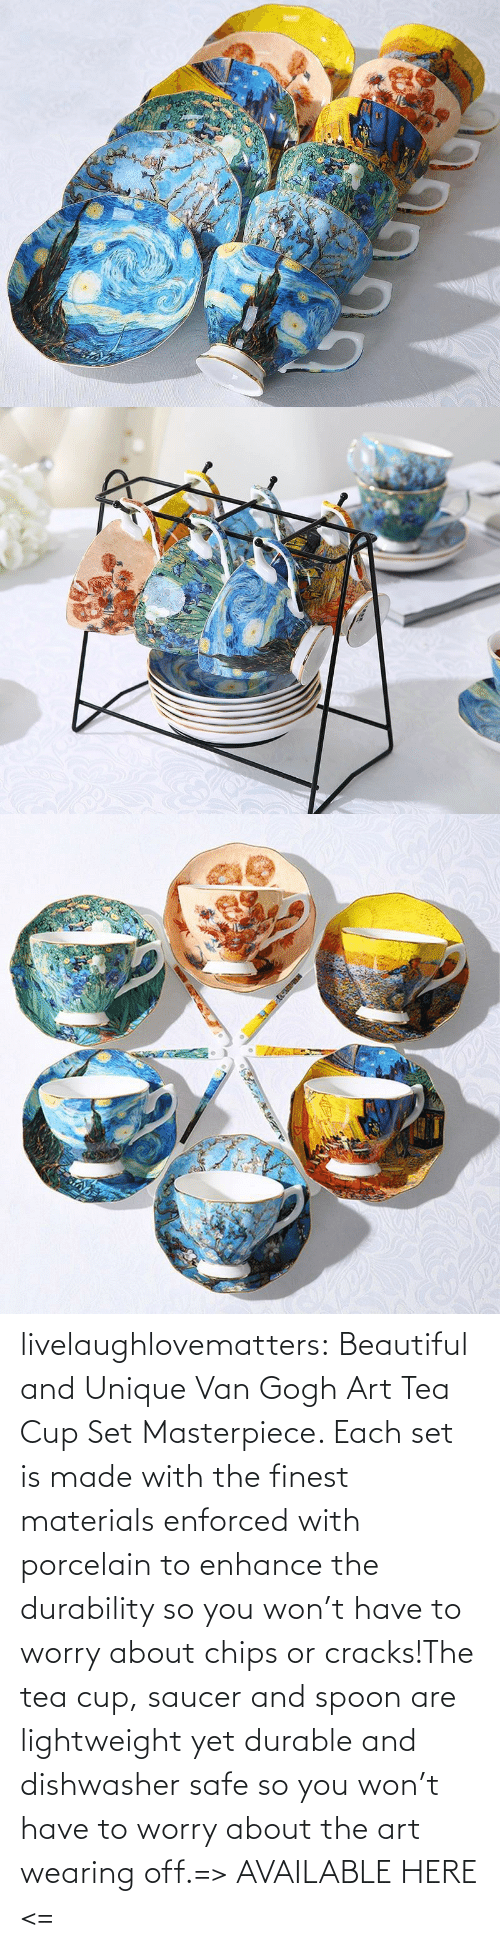 Lightweight: livelaughlovematters:  Beautiful and Unique Van Gogh Art Tea Cup Set Masterpiece. Each set is made with the finest materials enforced with porcelain to enhance the durability so you won't have to worry about chips or cracks!The tea cup, saucer and spoon are lightweight yet durable and dishwasher safe so you won't have to worry about the art wearing off.=> AVAILABLE HERE <=